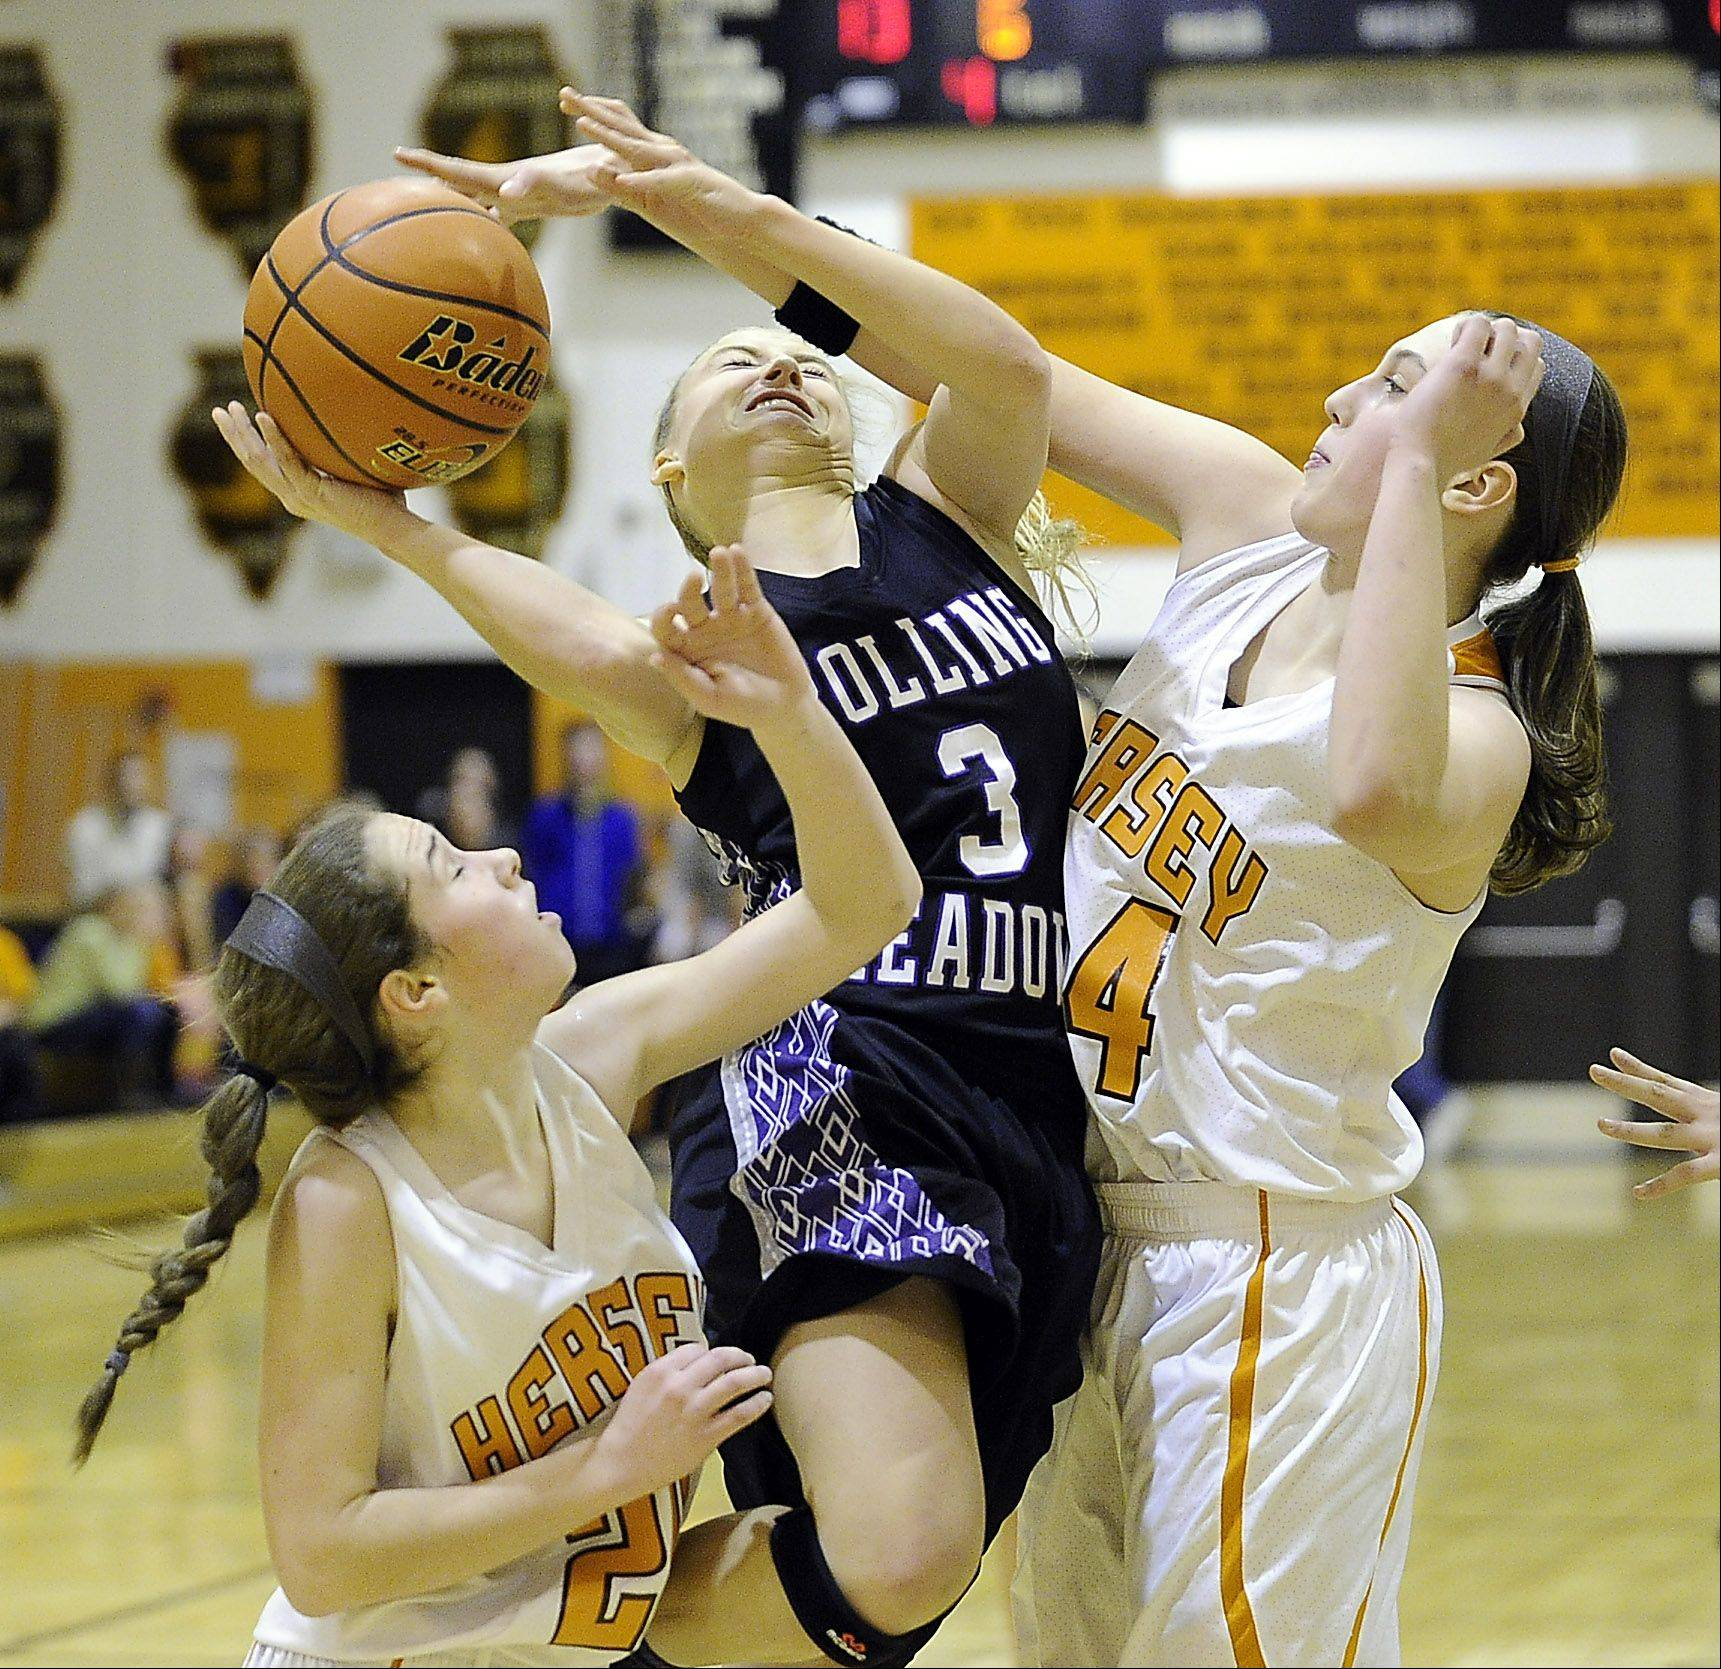 Rolling Meadows' Jackie Kemph powers her way through Hersey's defense comprised Kelly Weyhrich and Maggie Berigan in girls basketball at Hersey.